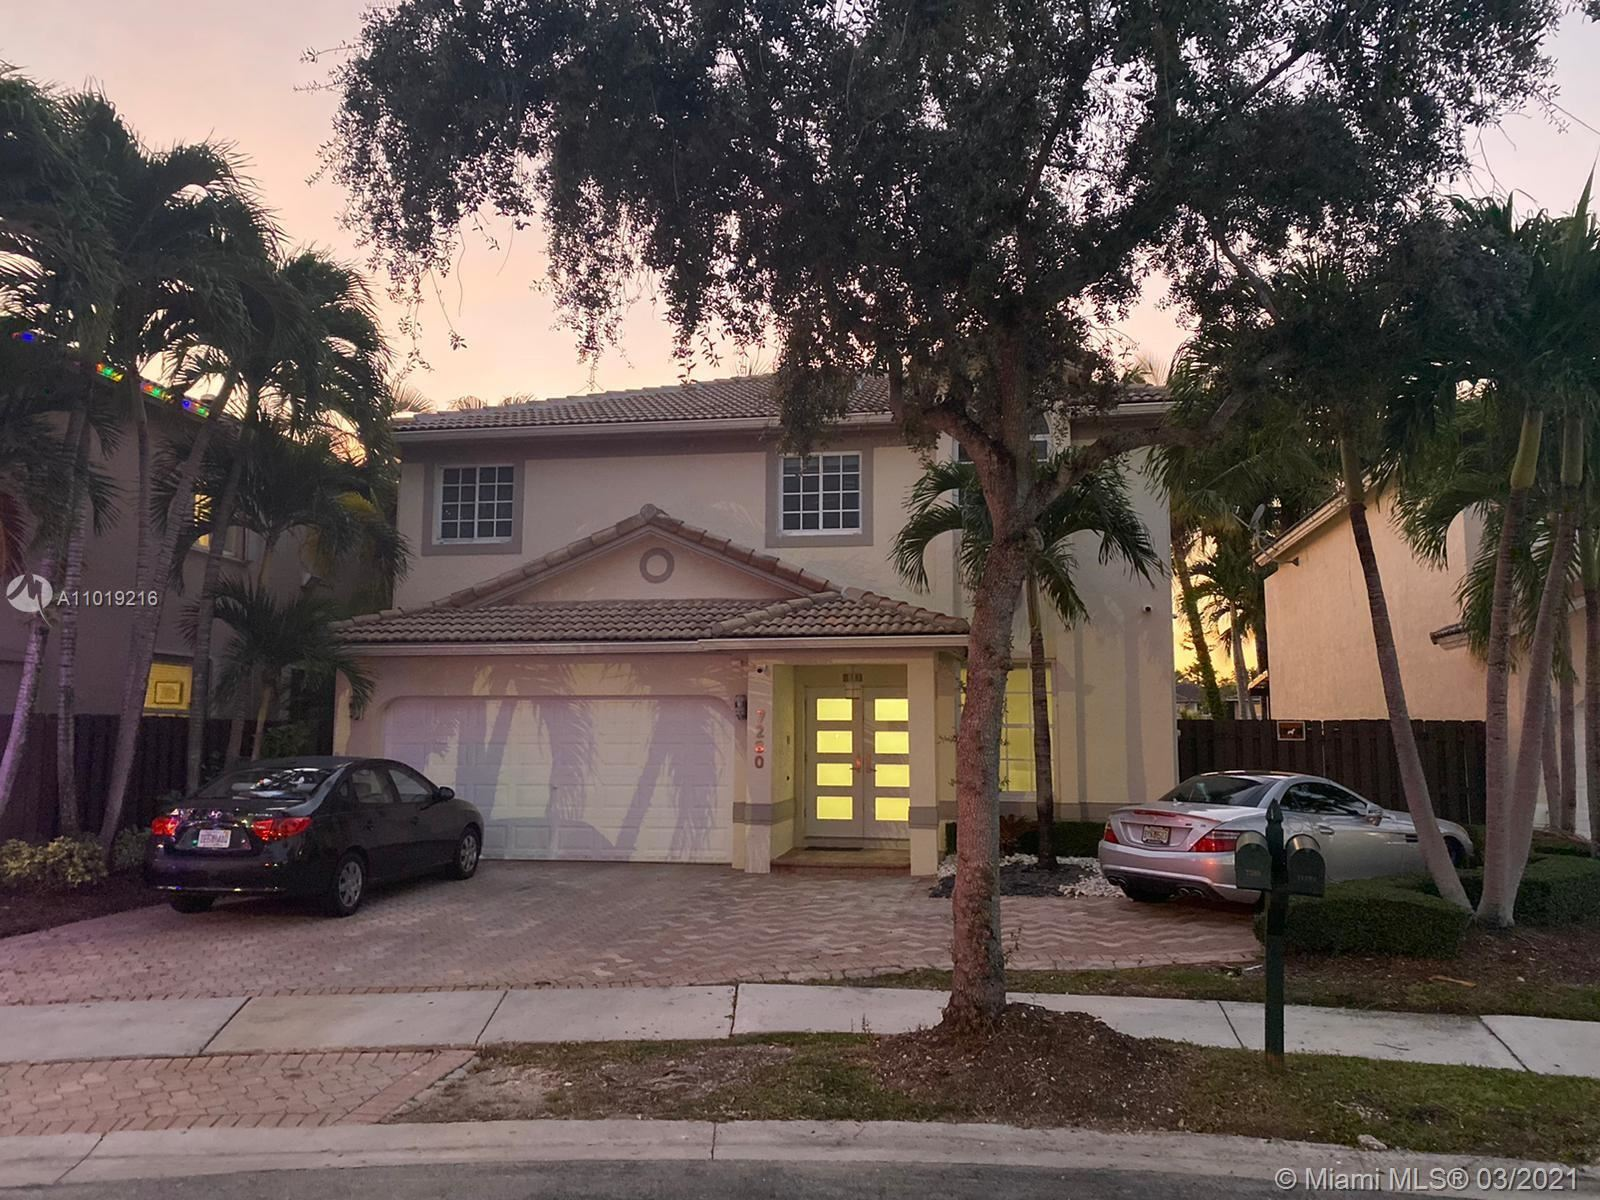 7280 NW 112th Ave, Doral, FL 33178 - #: A11019216